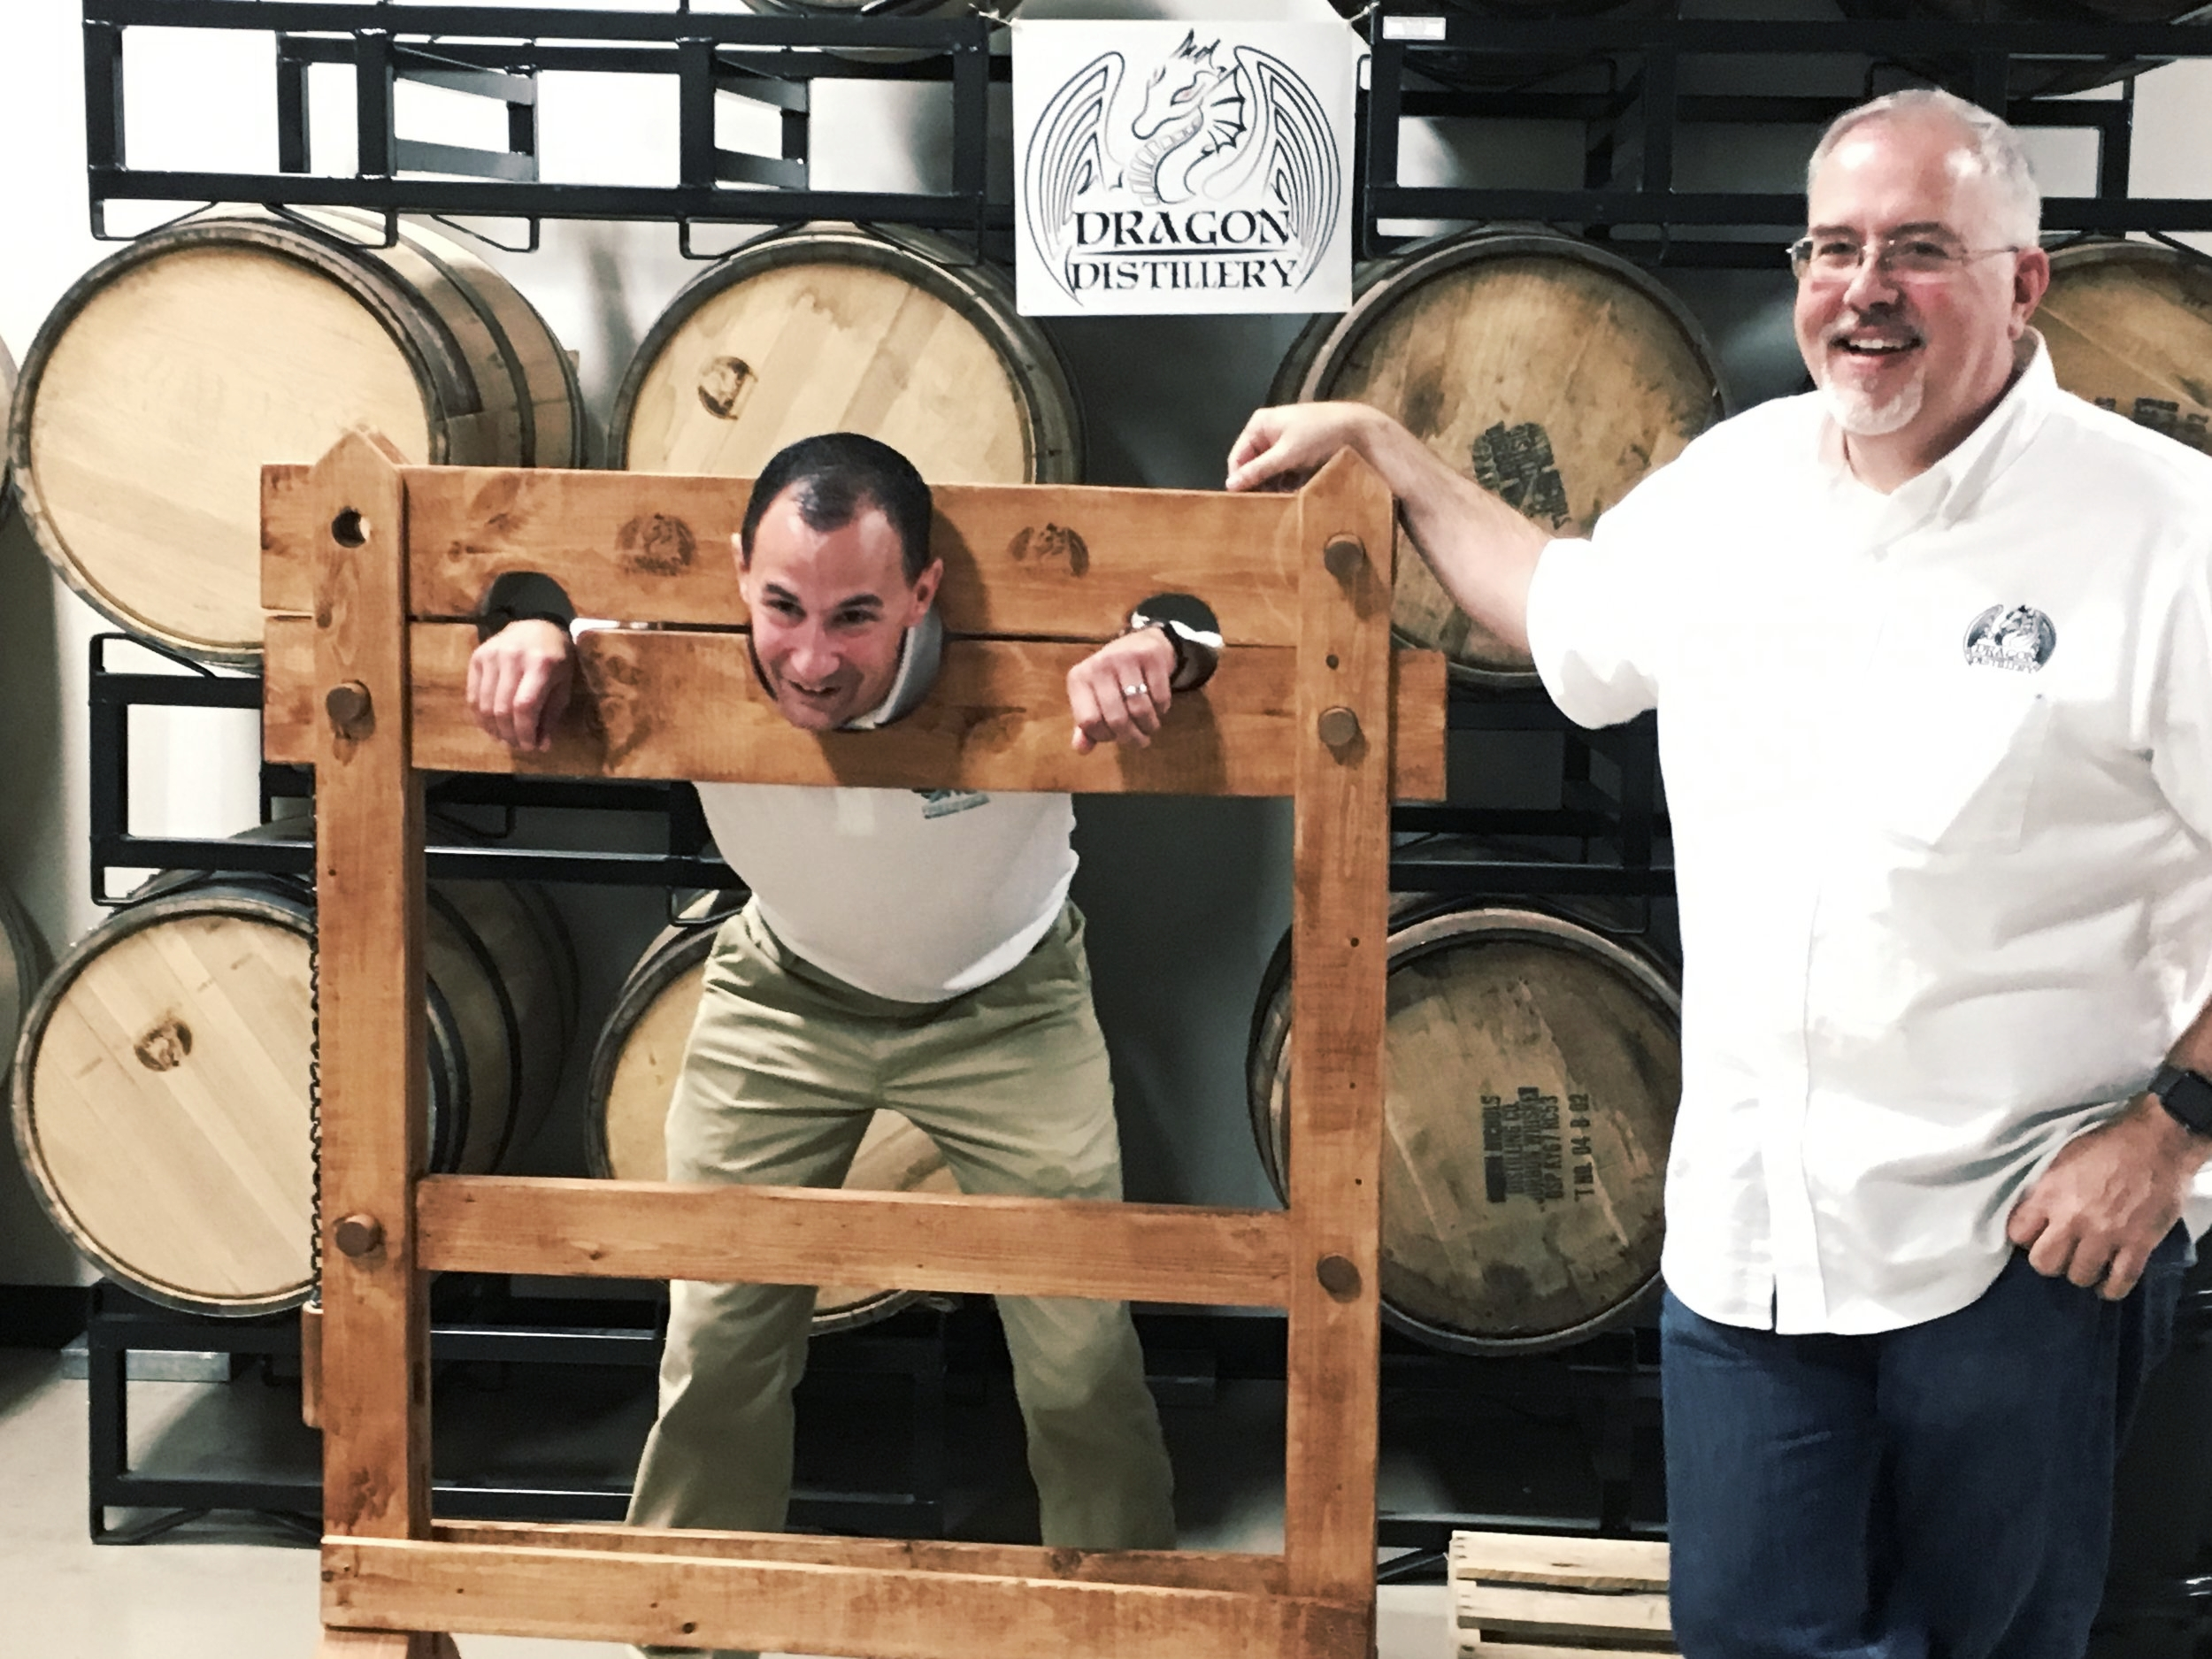 Dragon Distillery opened in 2015 as the City of Frederick's first distillery. The venture's success has since inspired two more distilleries to open in Frederick, complimenting the five craft-breweries already established within City limits.